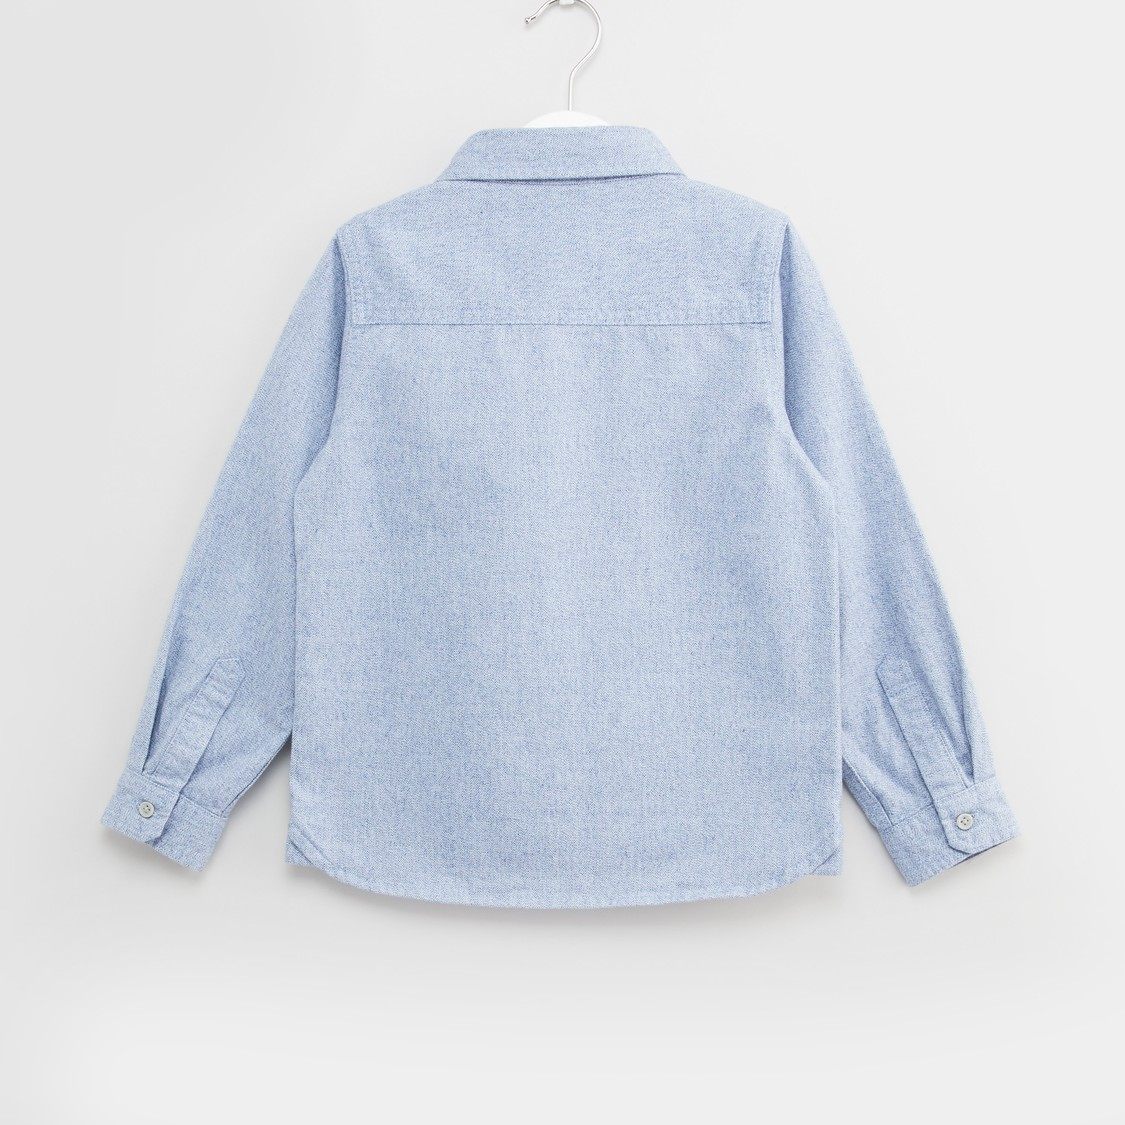 Textured Shirt with Long Sleeves and Chest Pocket